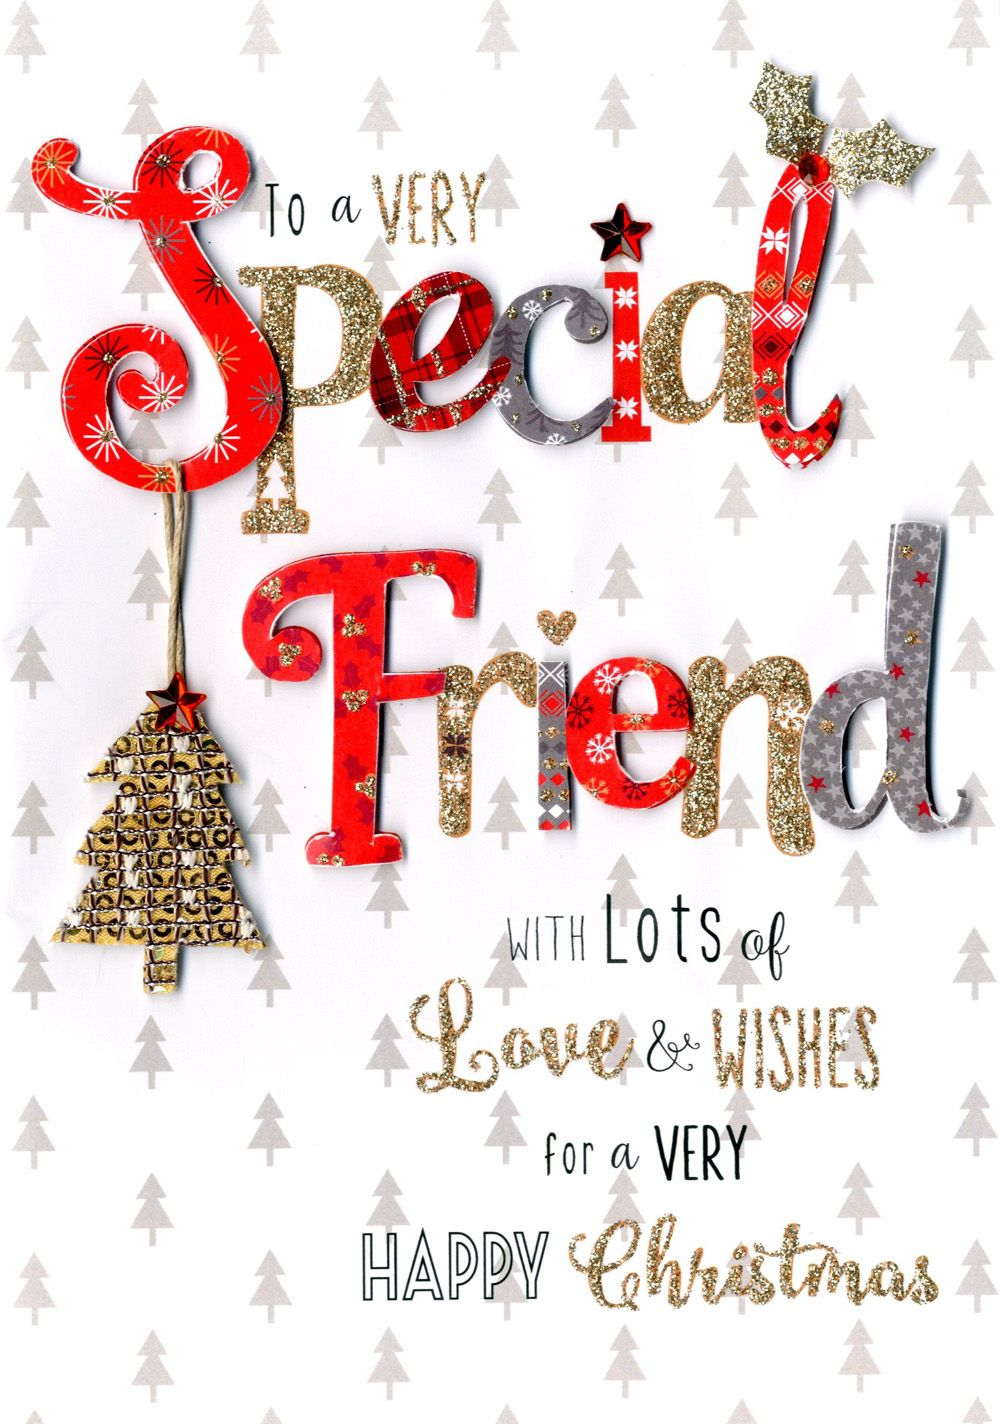 30 Christmas Greetings for a Friend to Make Them Happy